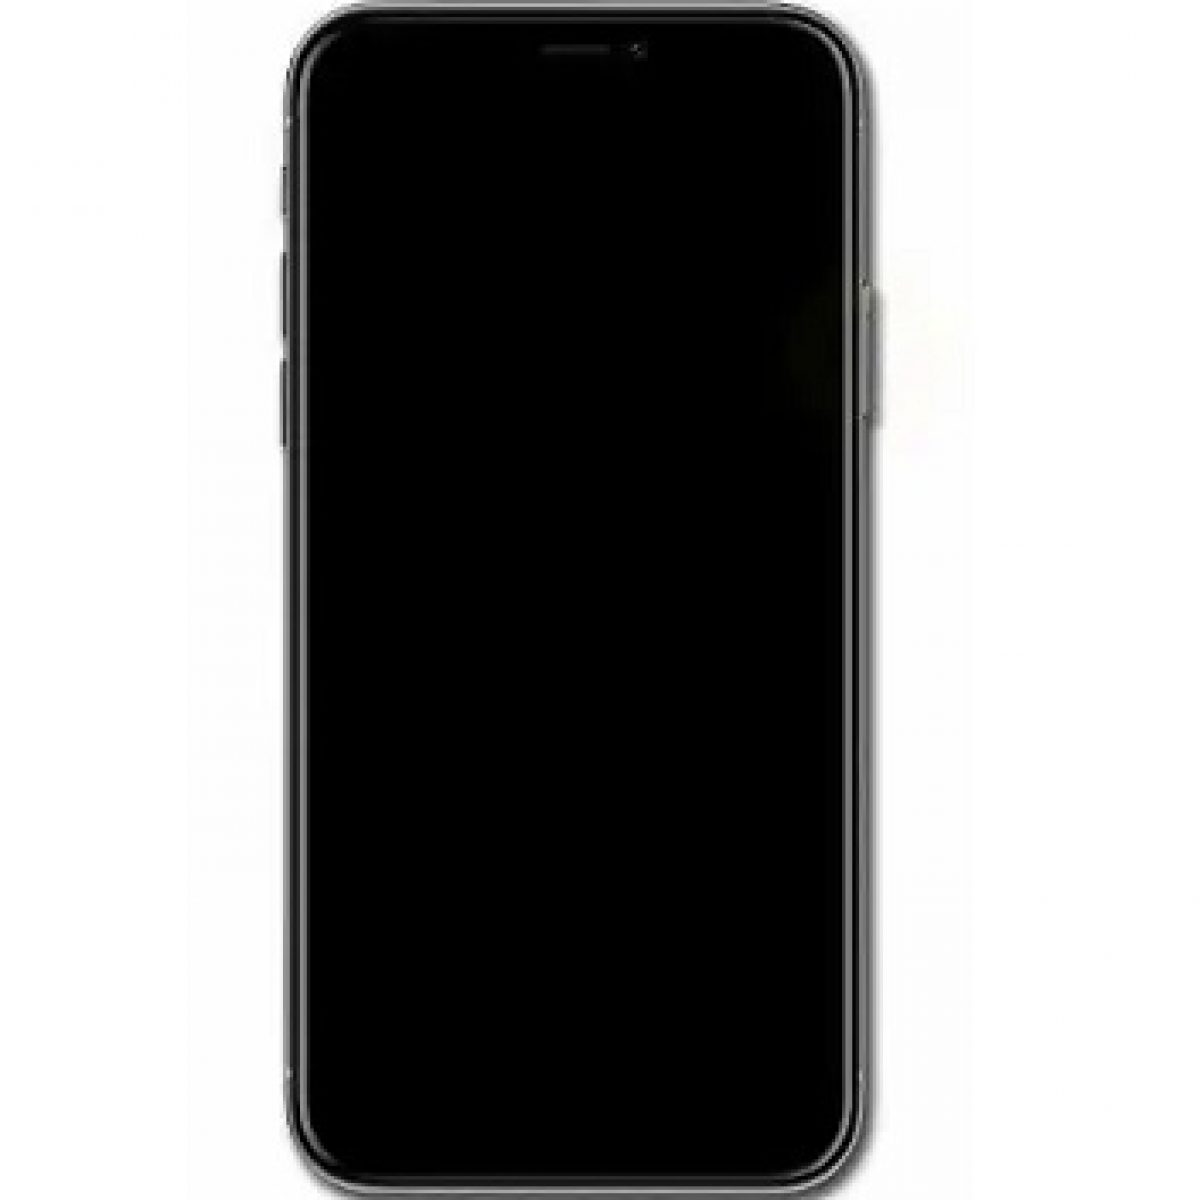 How To Fix Iphone Xr With Black Screen Of Death